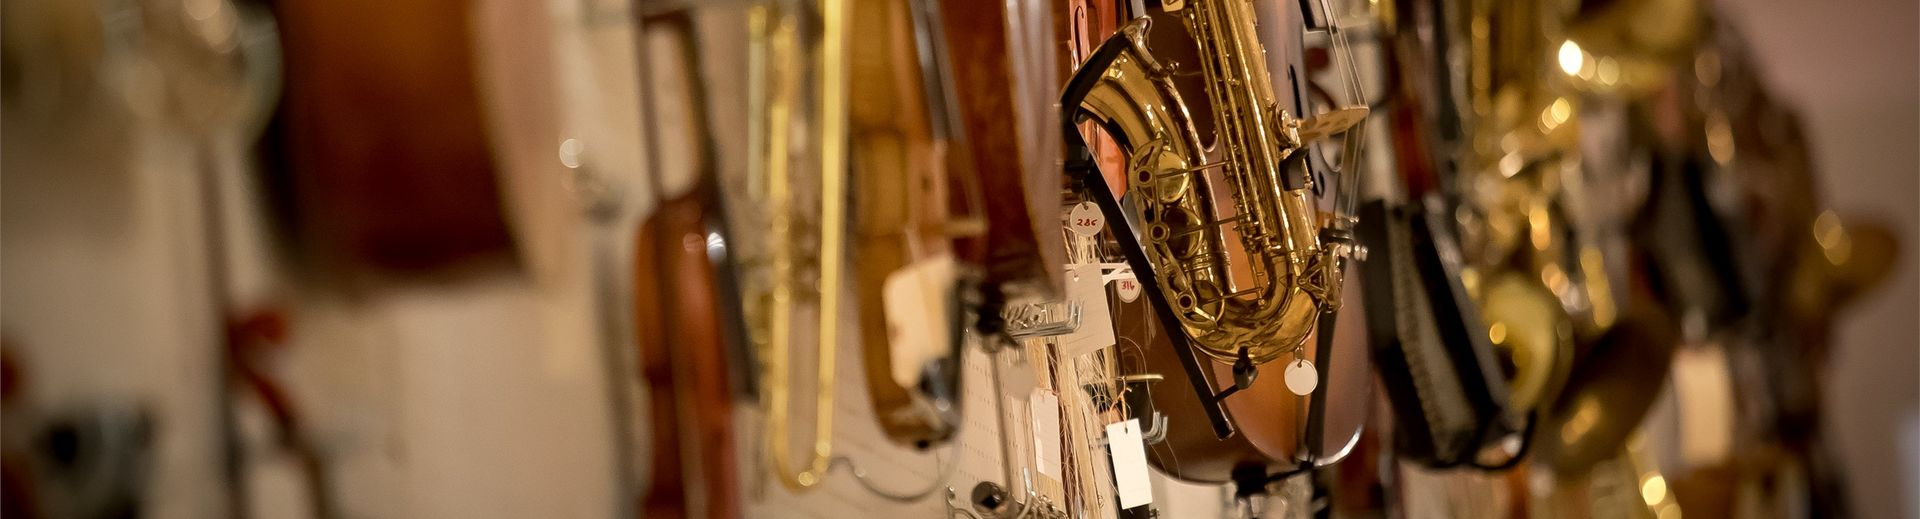 Several string and brass instruments hanging on a wall.